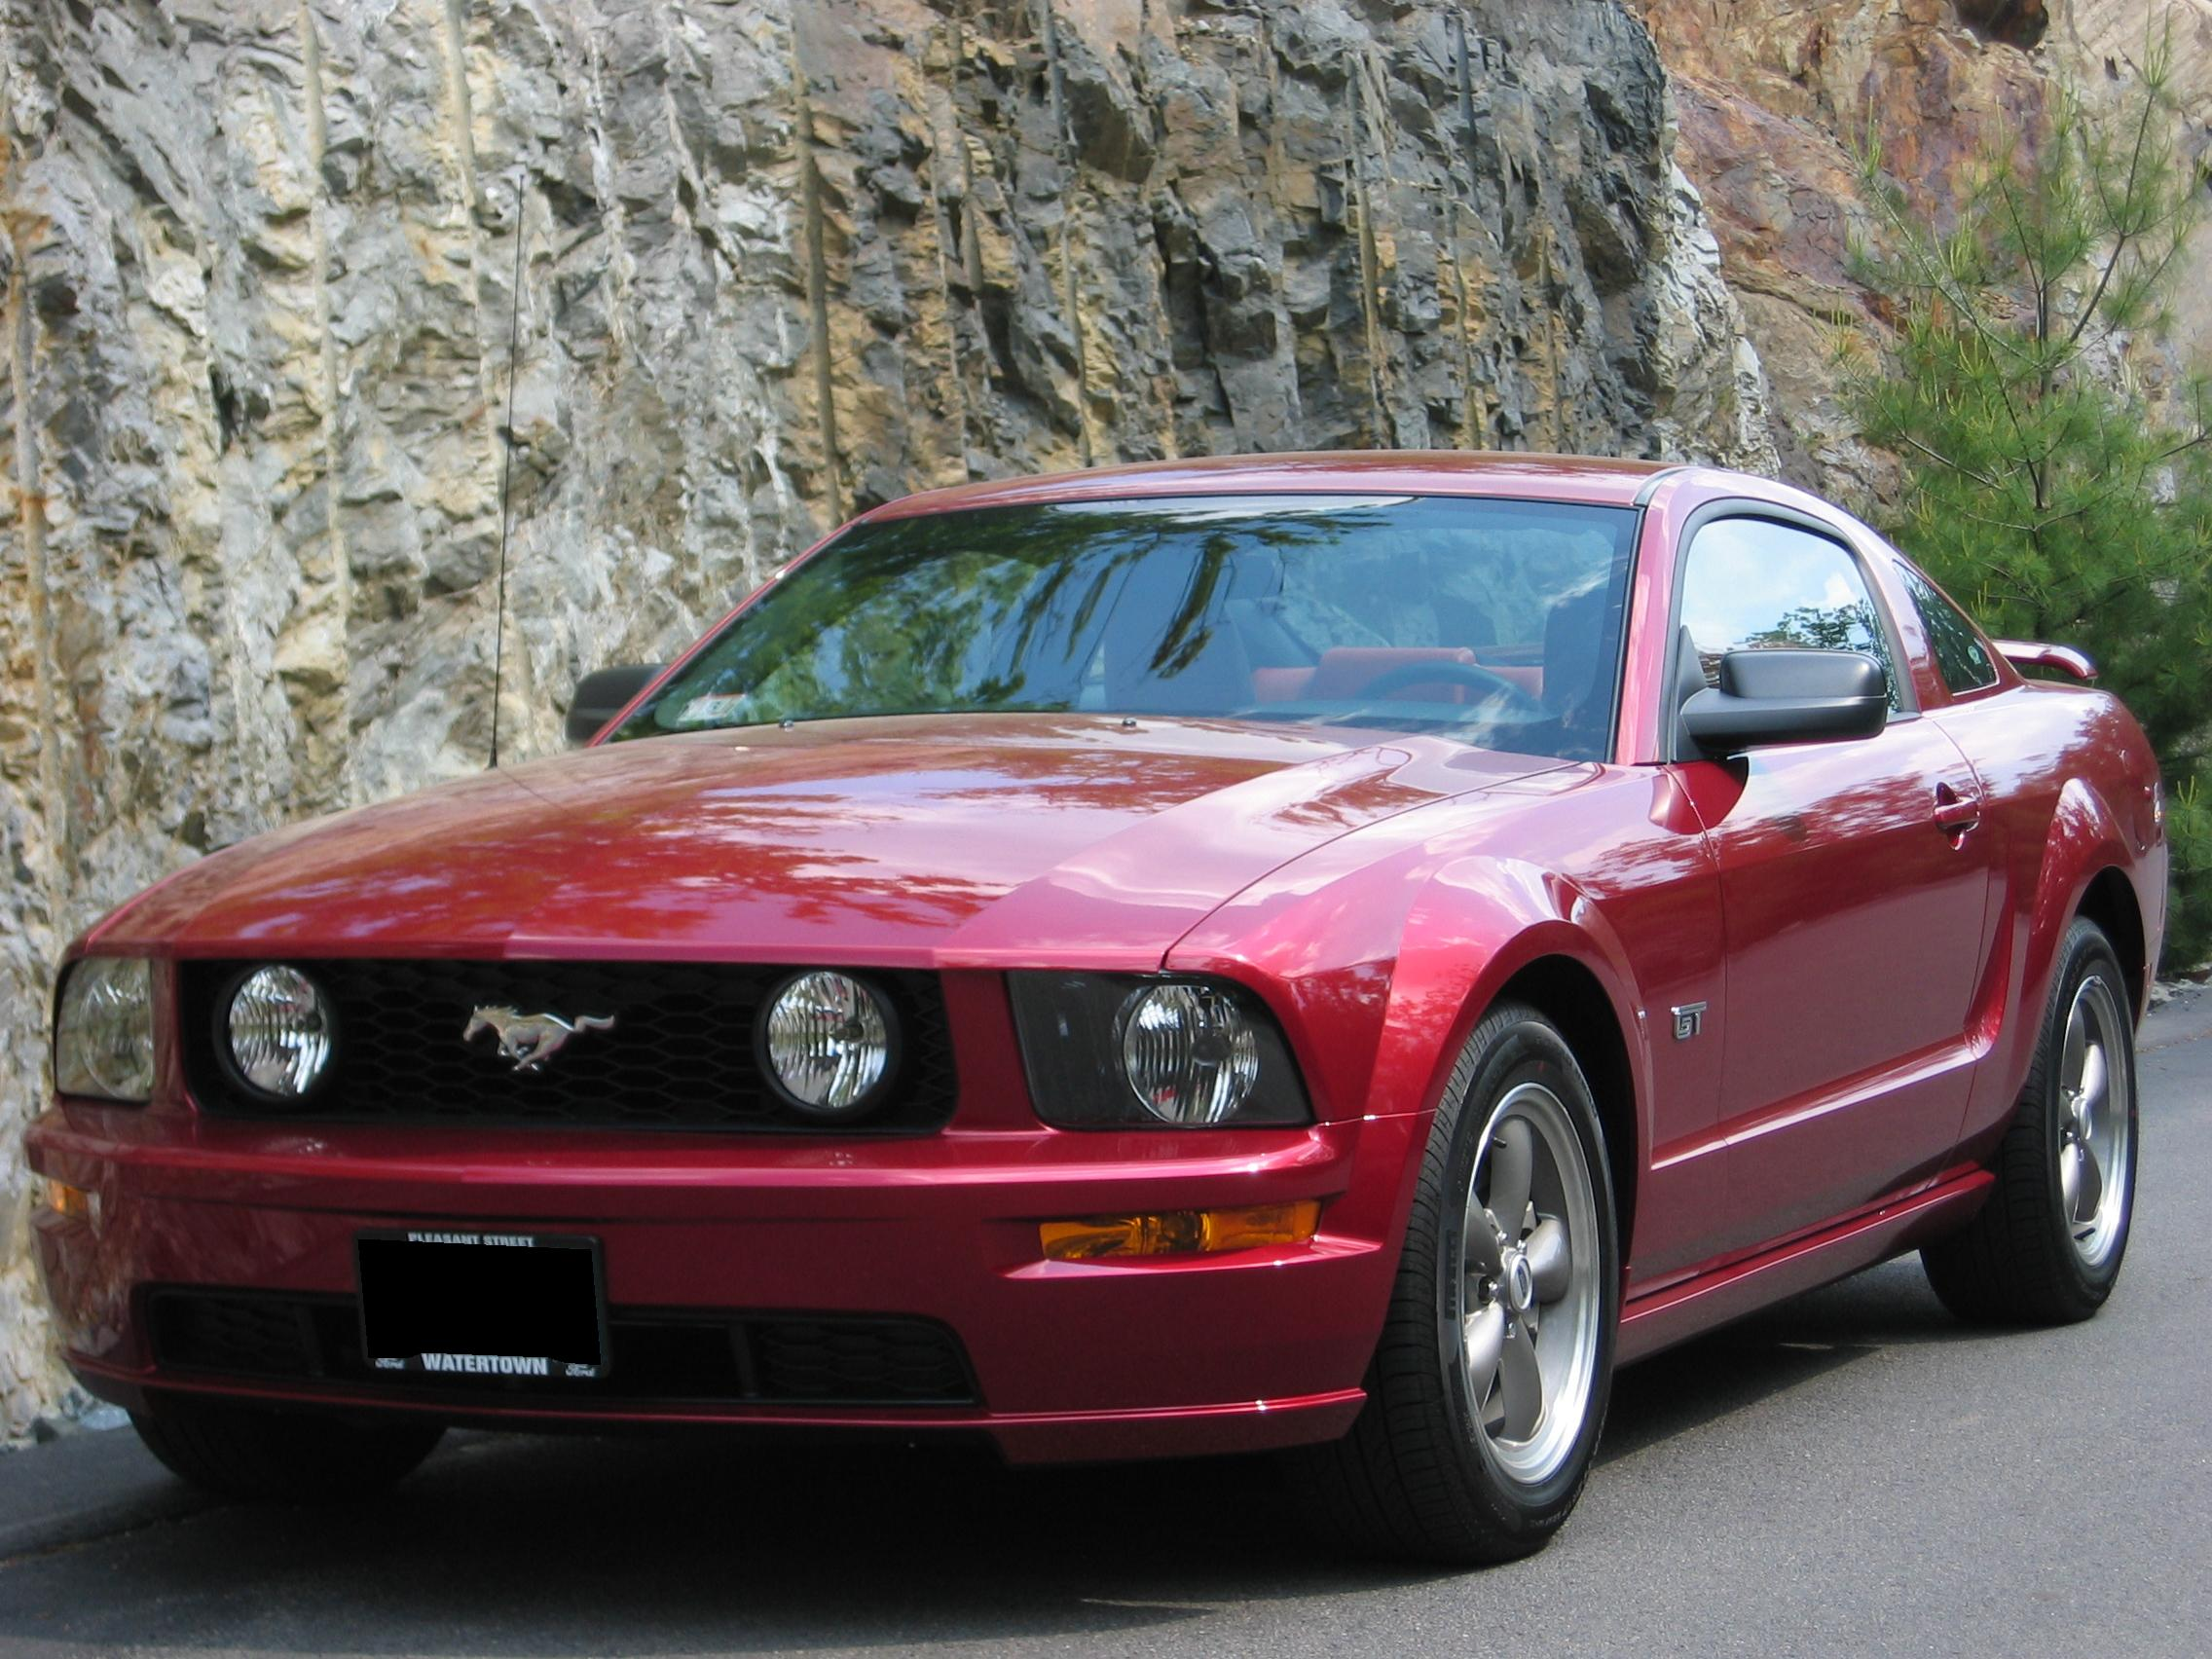 Awesome 2005 Ford Mustang #1